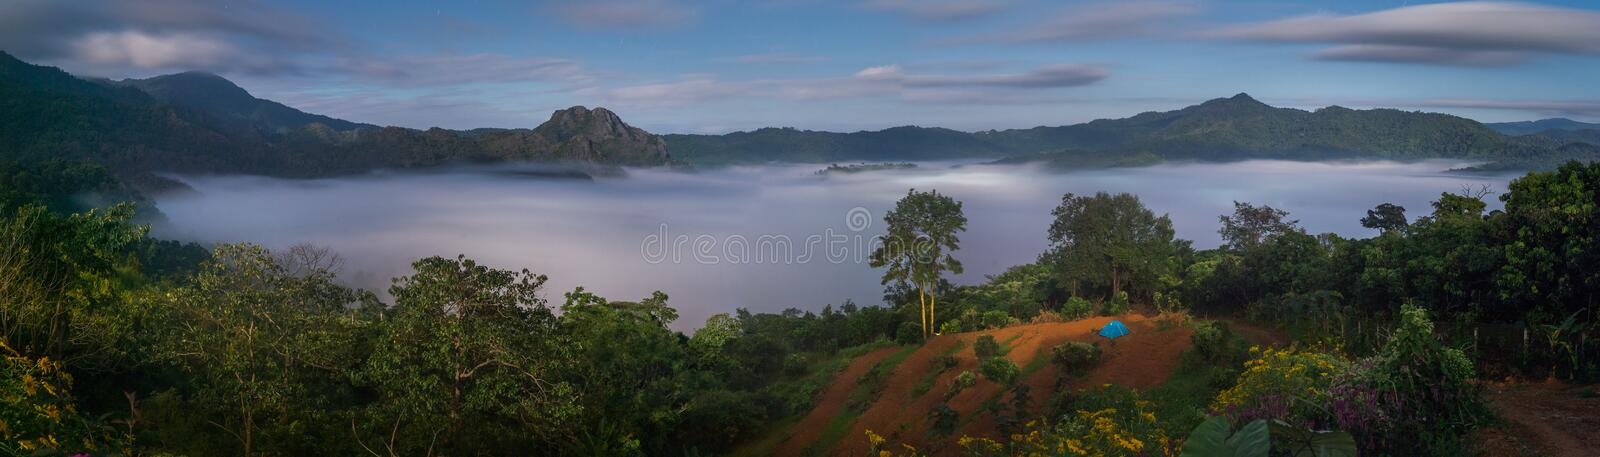 The Mist with Mountain Background in the night, Landscape at Phu Langka. Payao Province, Thailand stock image